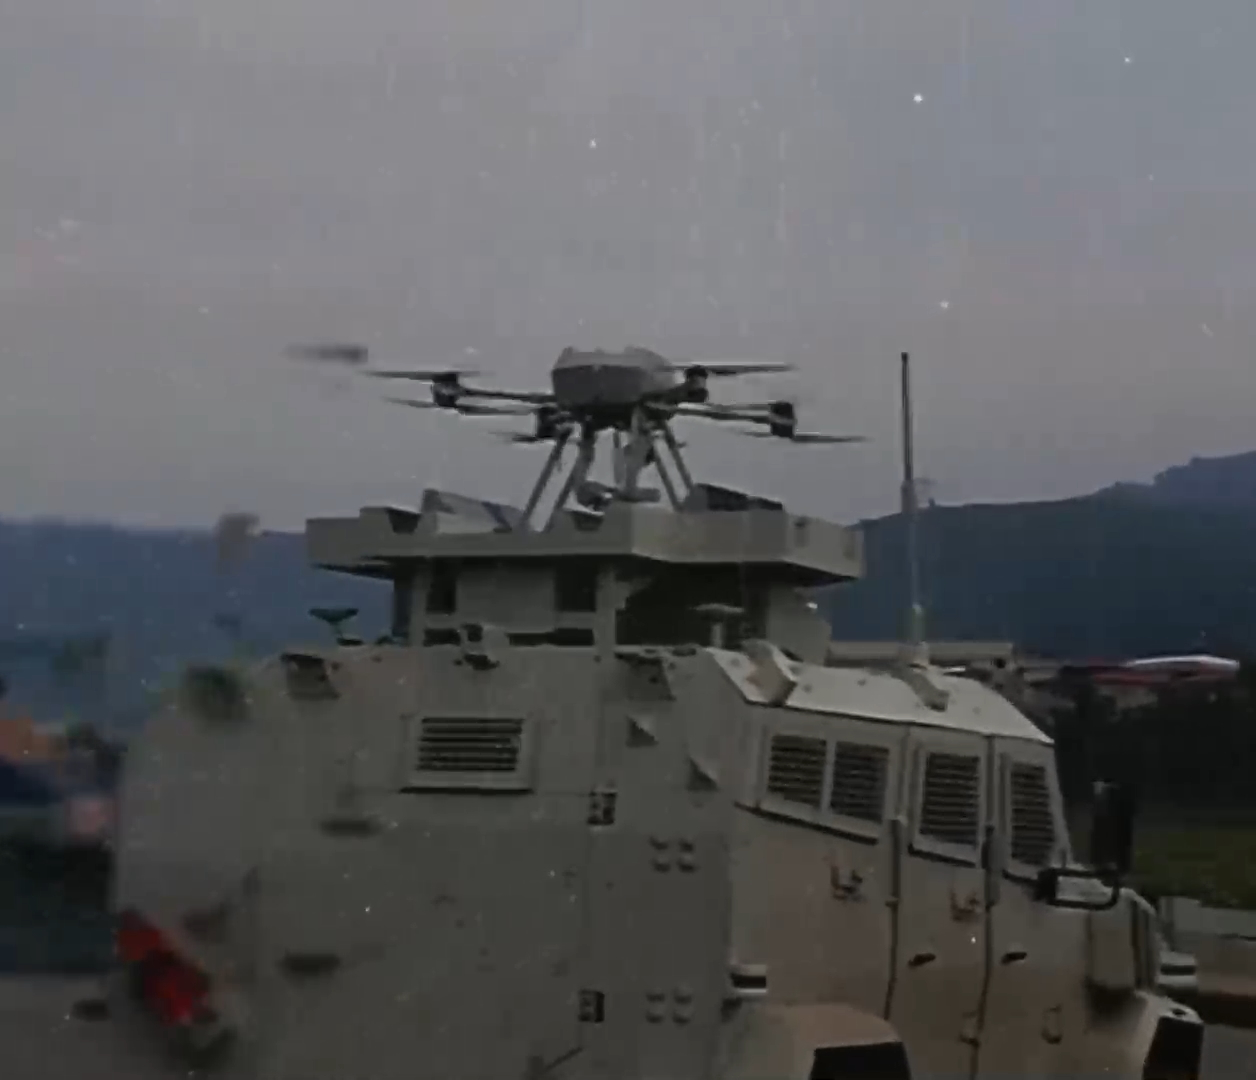 SONGAR Armed Drone System Integrated into an Armored Vehicle for the First Time